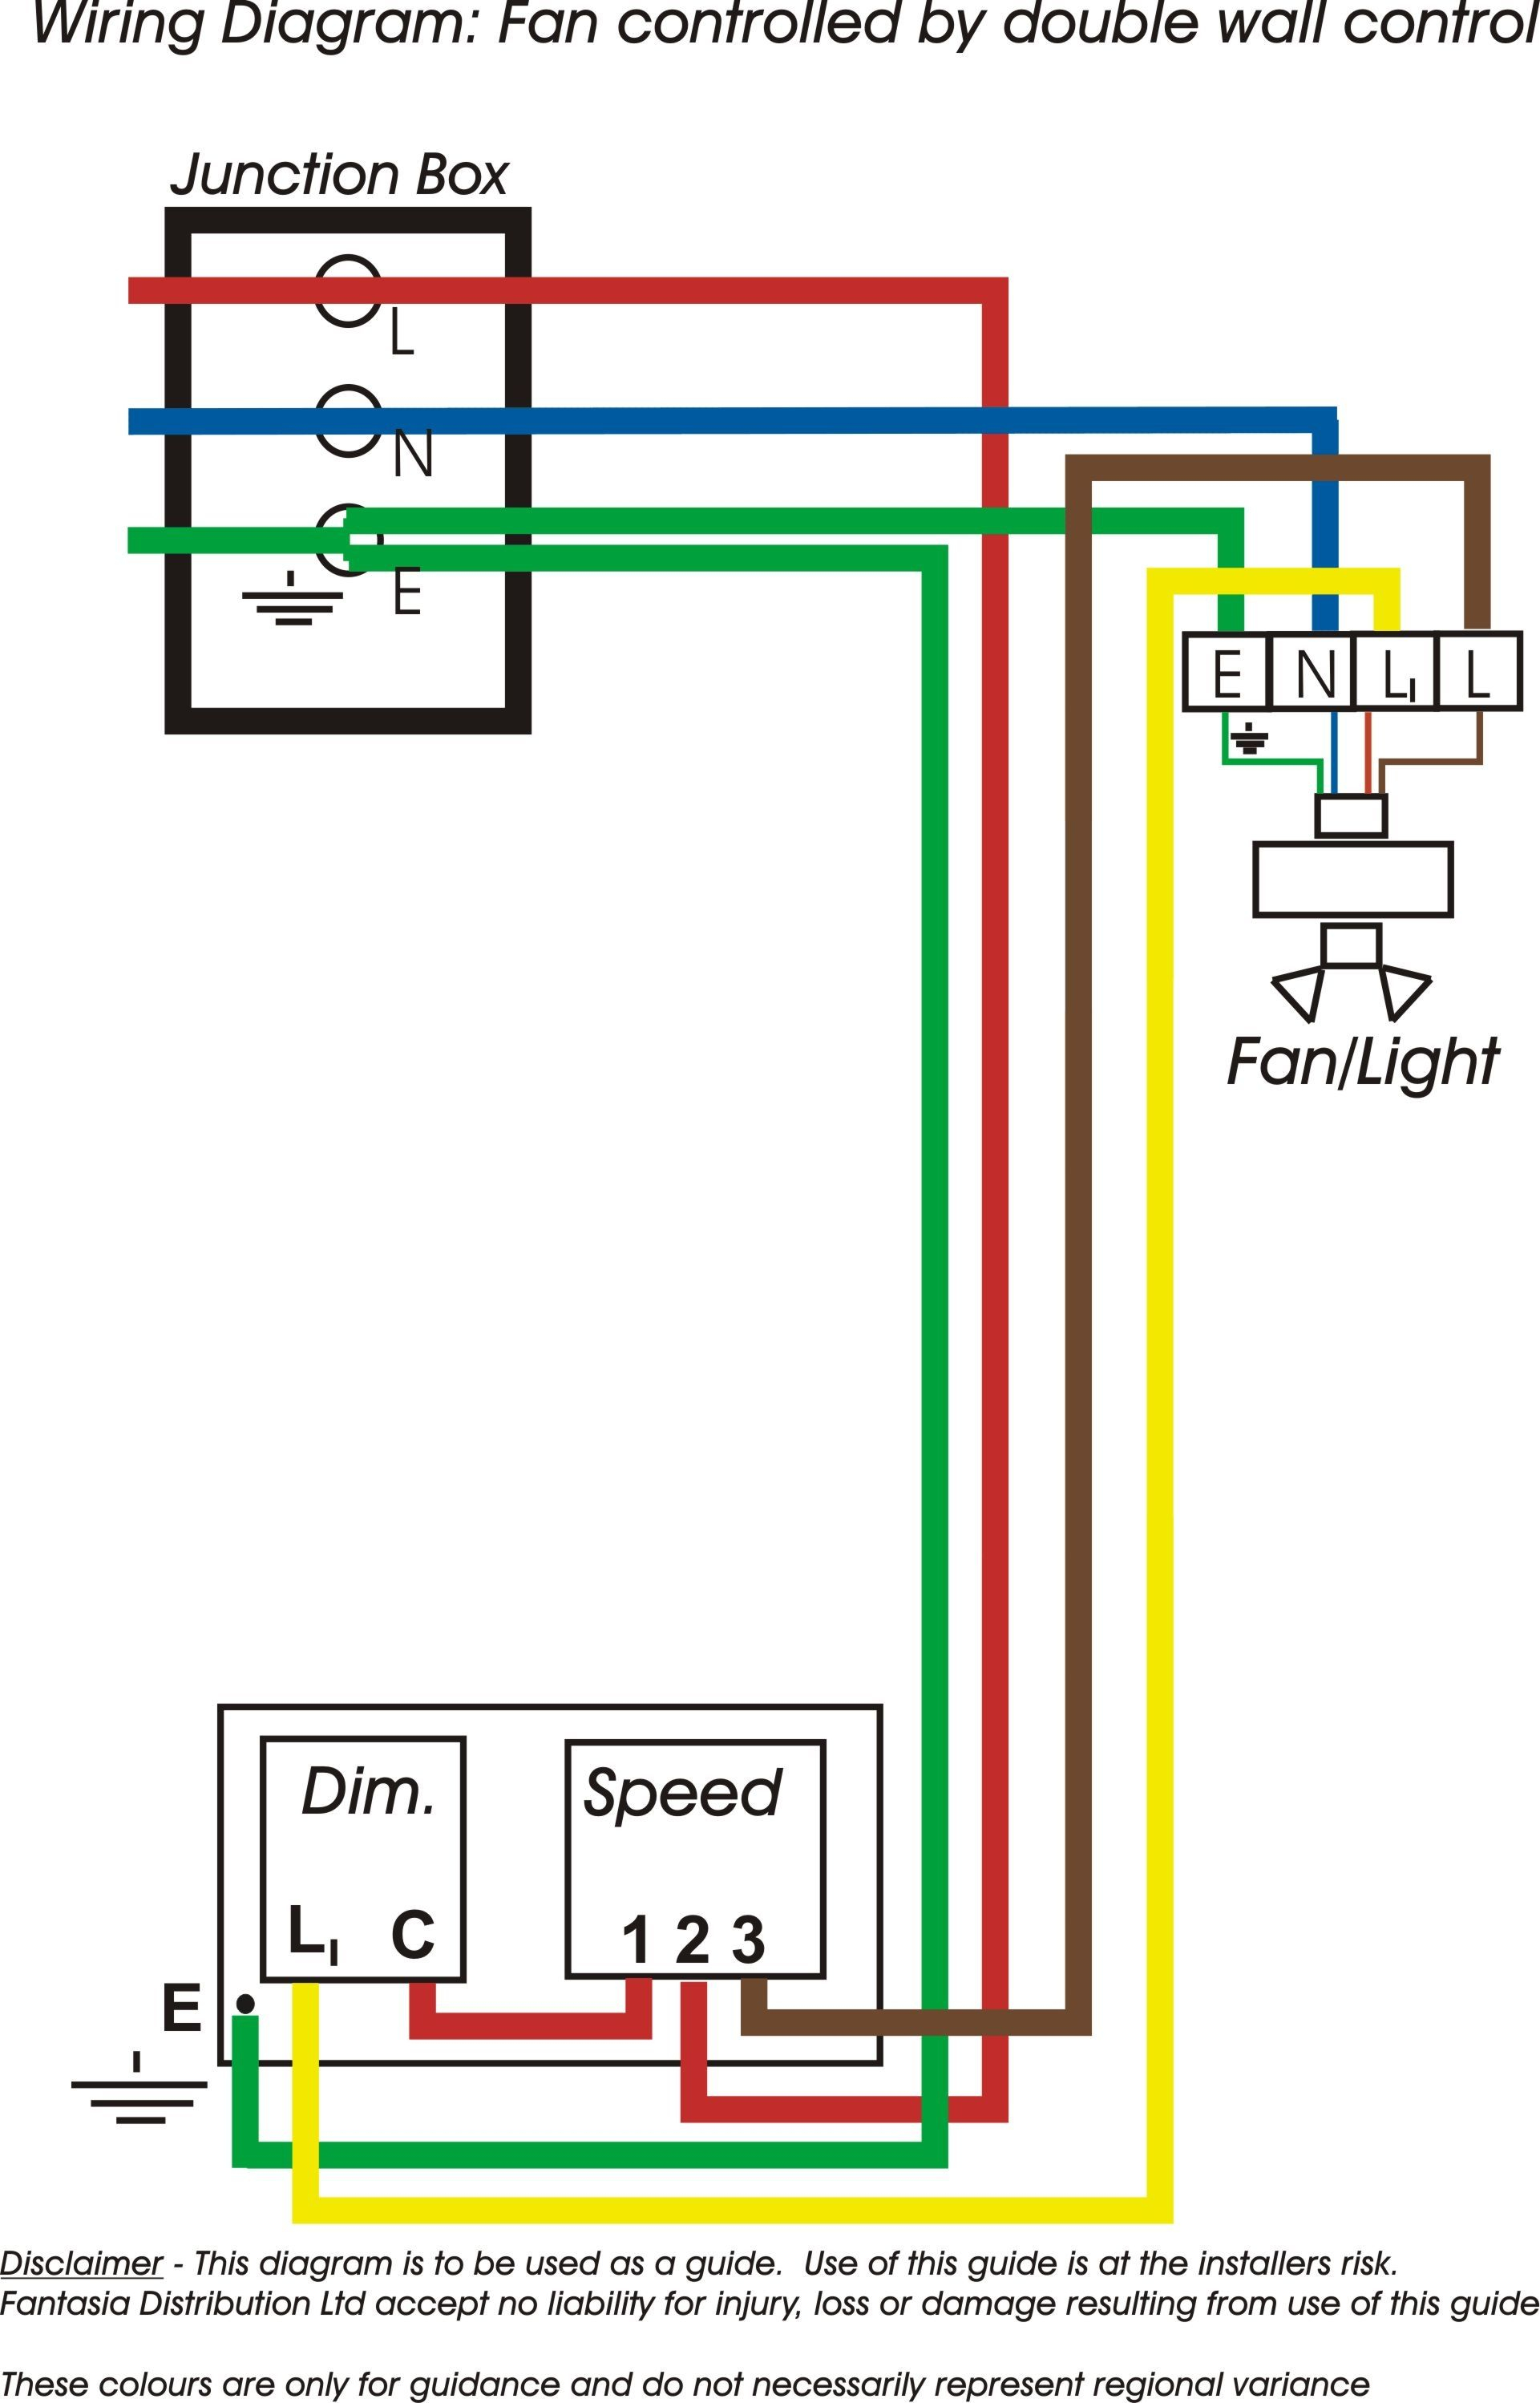 12V Trailer Wiring Diagram Remote Control For Fan Light Switch - Trailer Junction Box Wiring Diagram